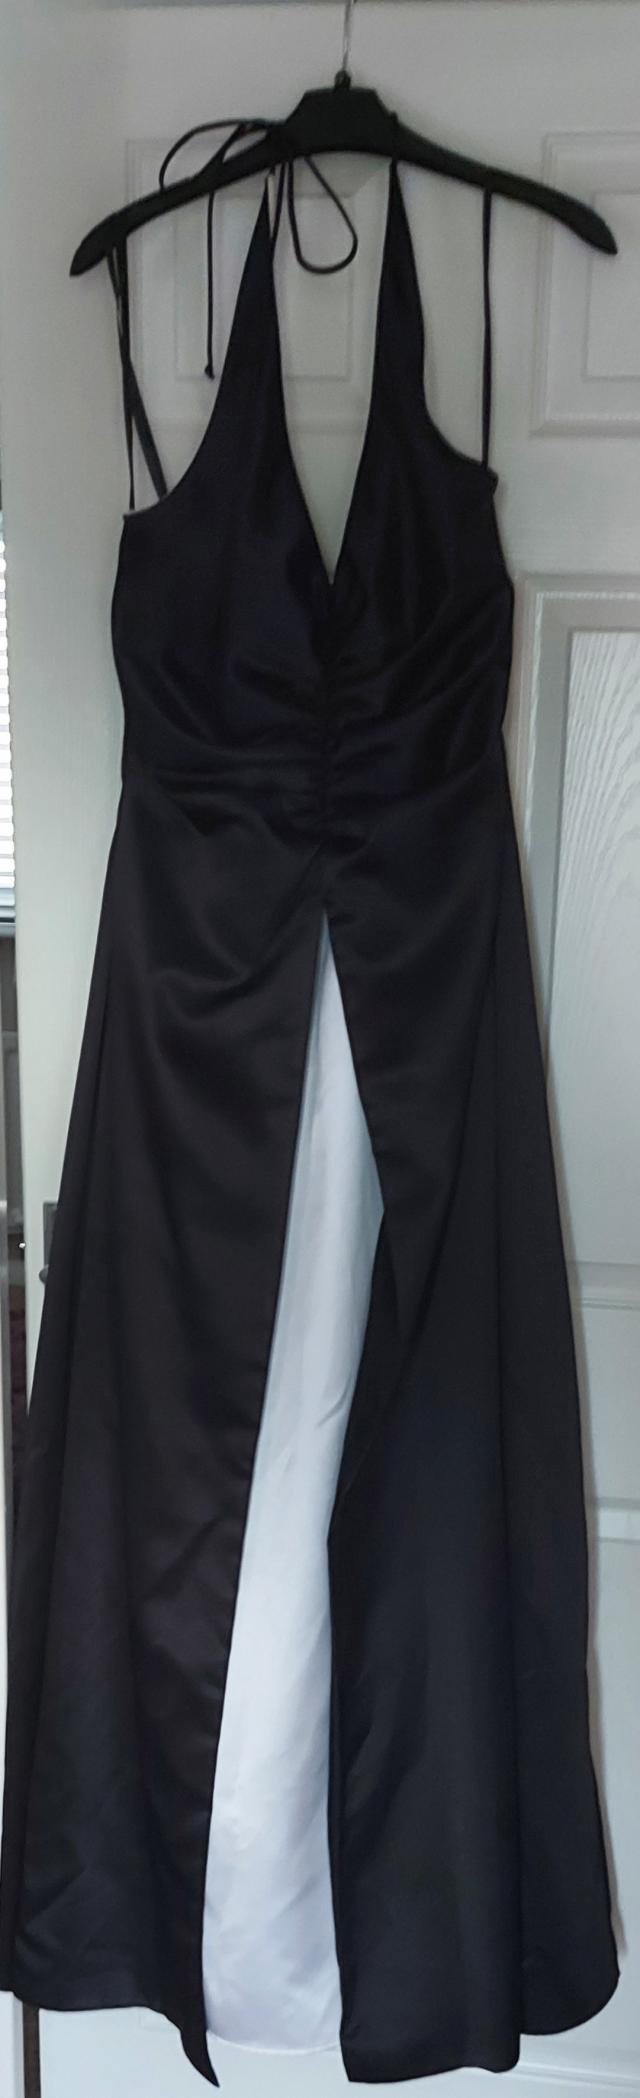 Preview of the first image of Betsy & Adam evening gown/prom dress size 12 worn once.